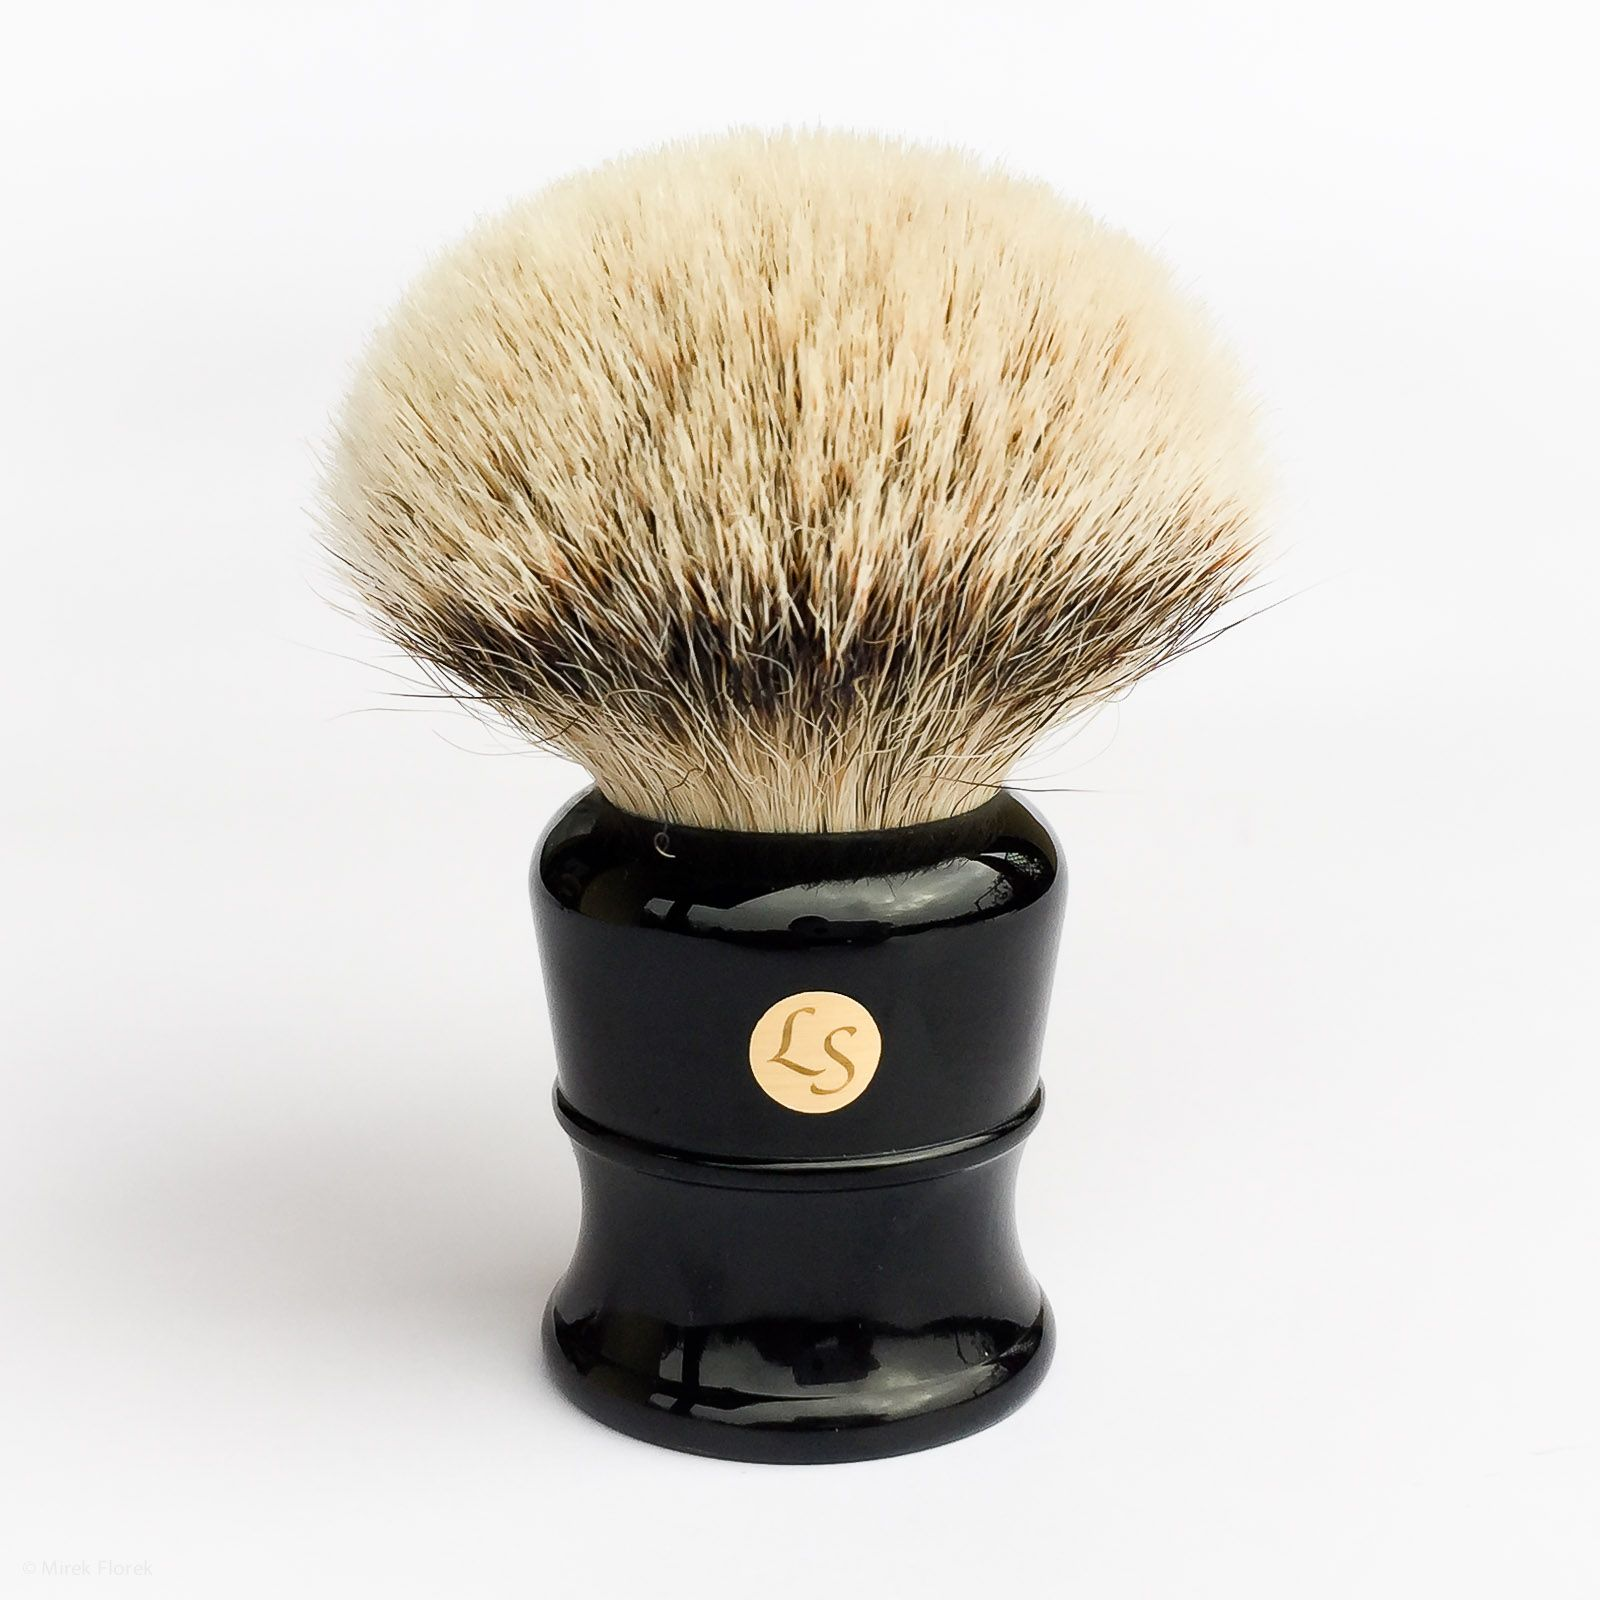 Pędzel LS Silvertip Badger Brush 30 mm po kilku użyciach